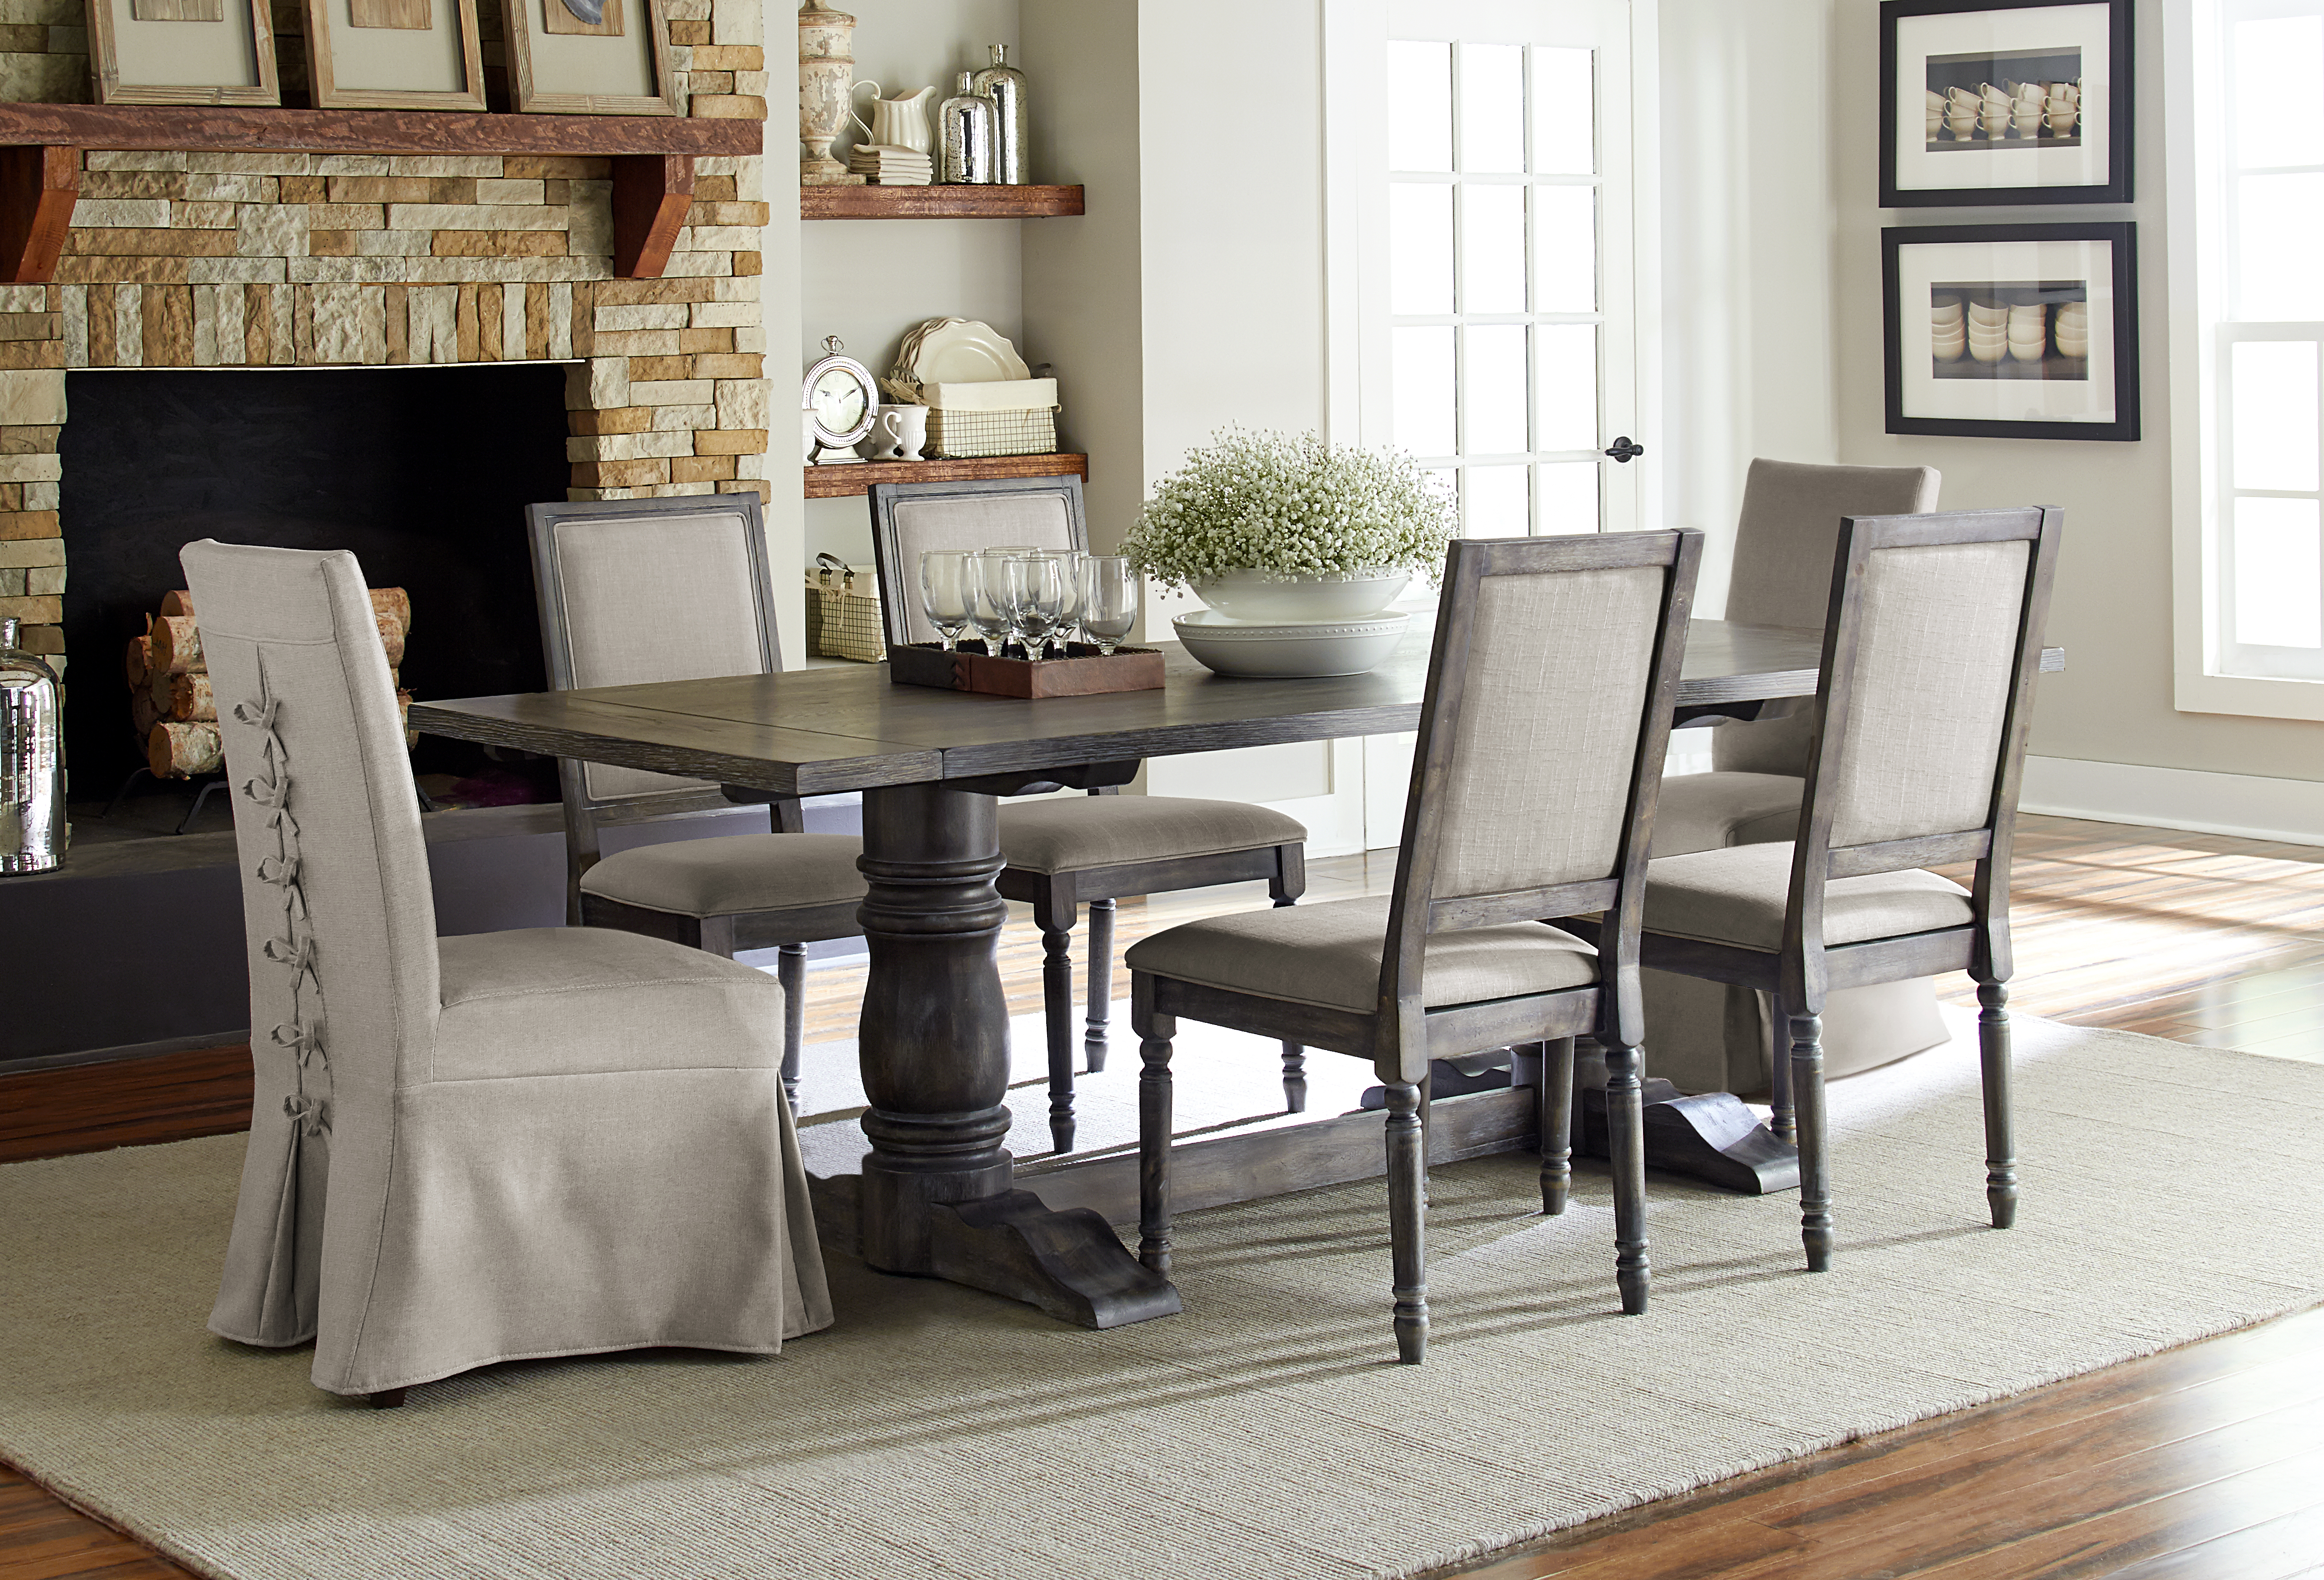 Atlanta GA Furniture Rentals